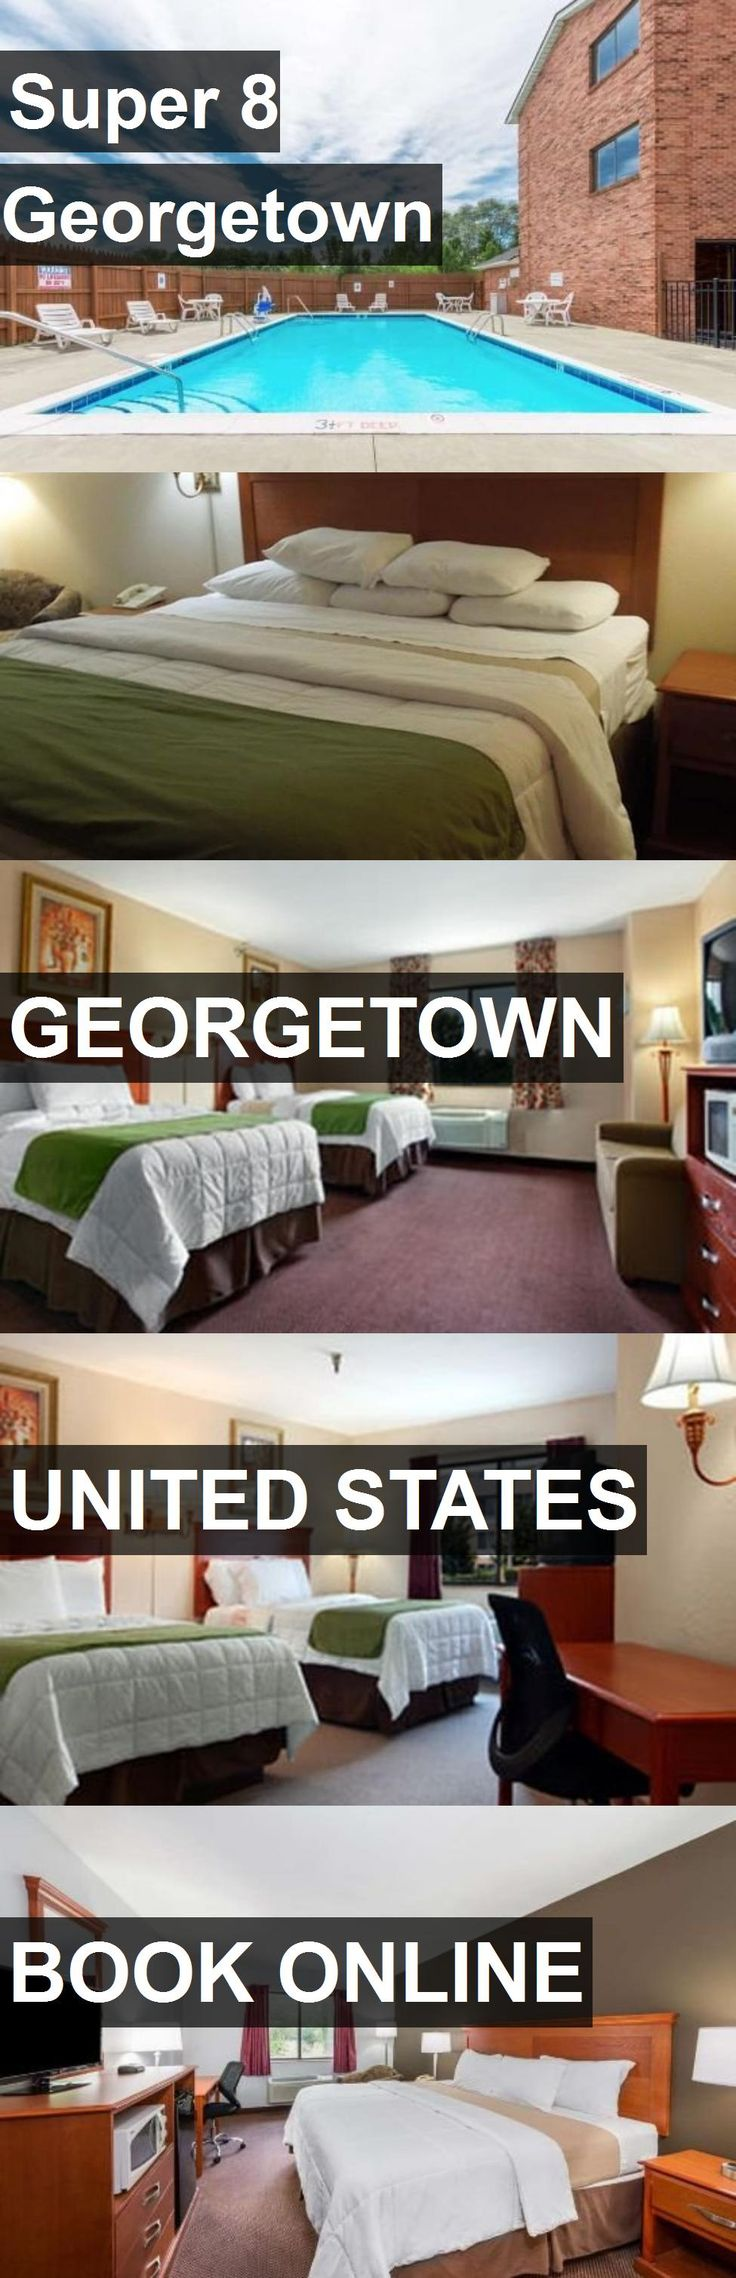 Hotel Super 8 Georgetown in Georgetown, United States. For more information, photos, reviews and best prices please follow the link. #UnitedStates #Georgetown #travel #vacation #hotel